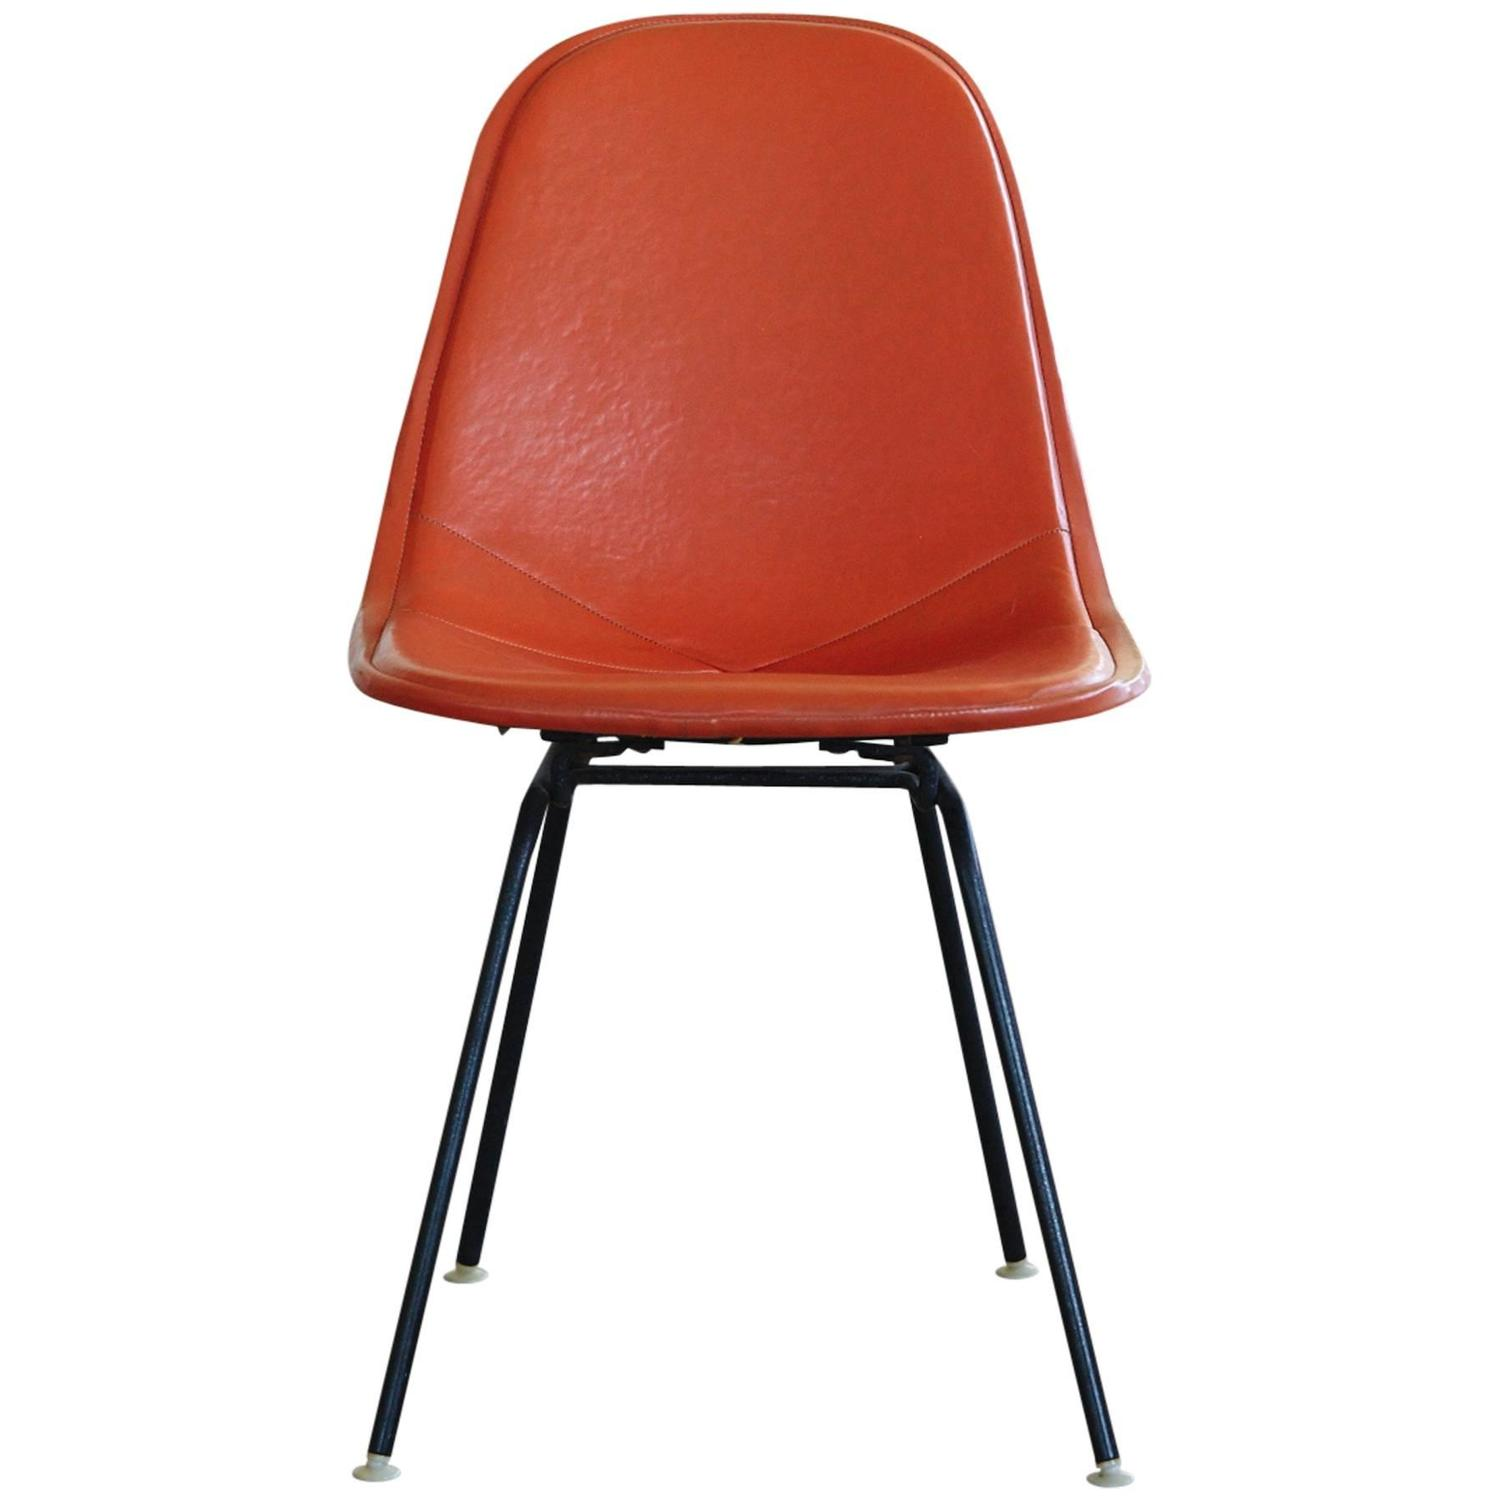 herman miller leather chair ikea au covers original eames dkx 1 side in orange for